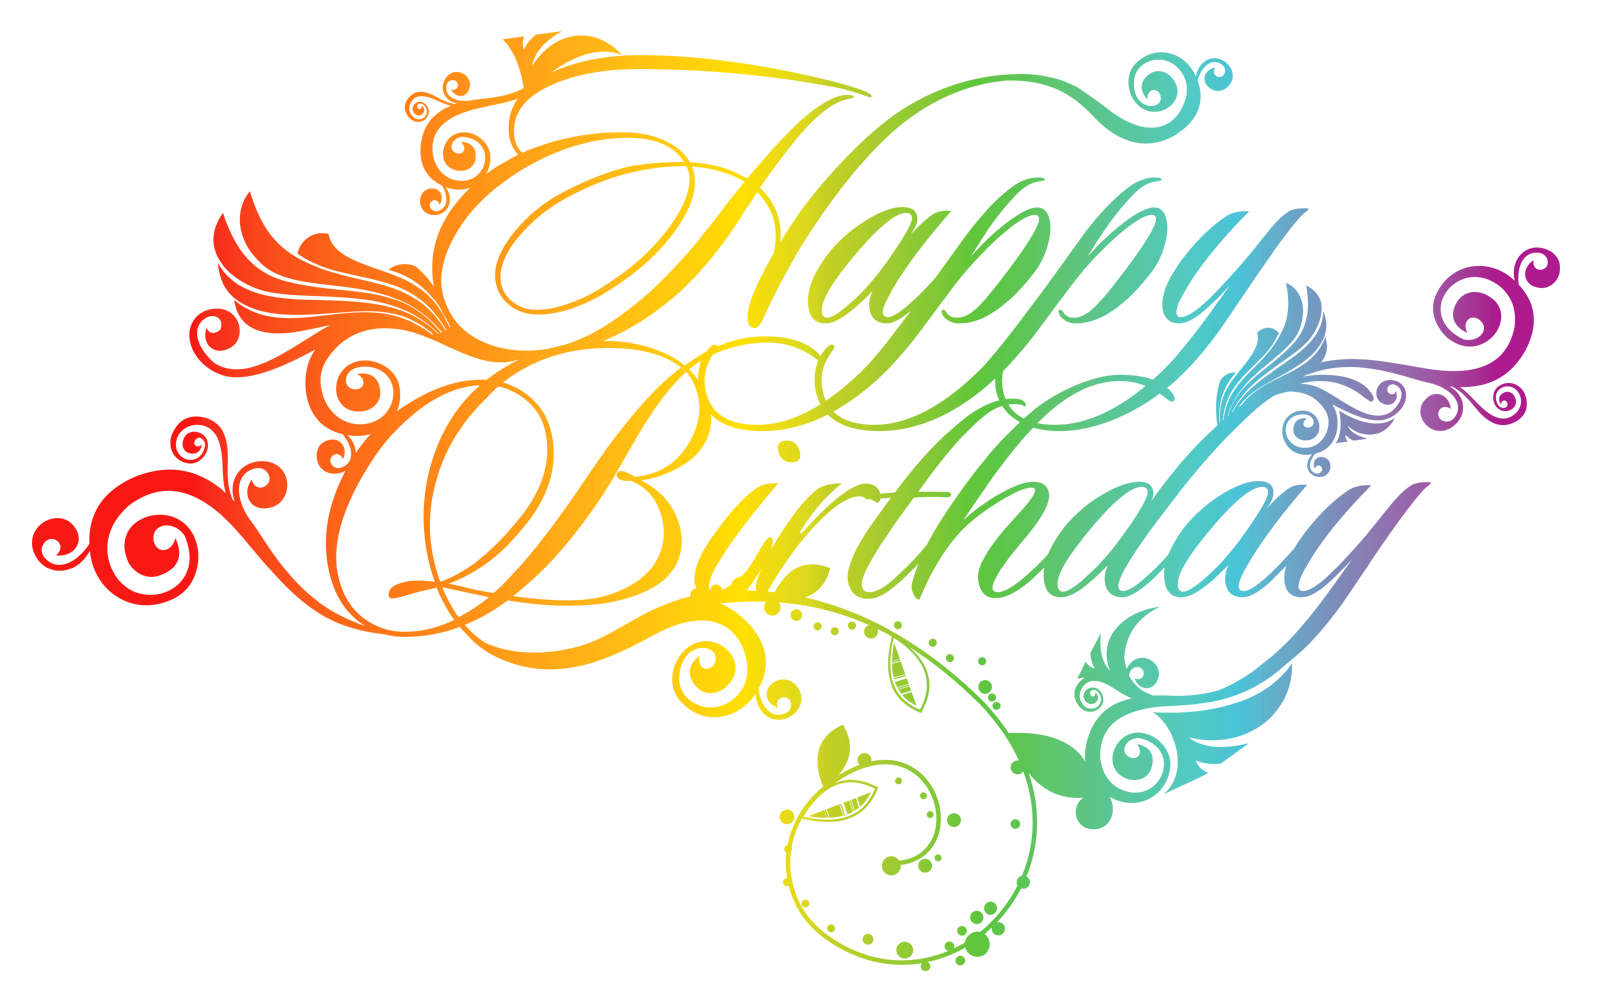 Birthday png text. Happy design elements free